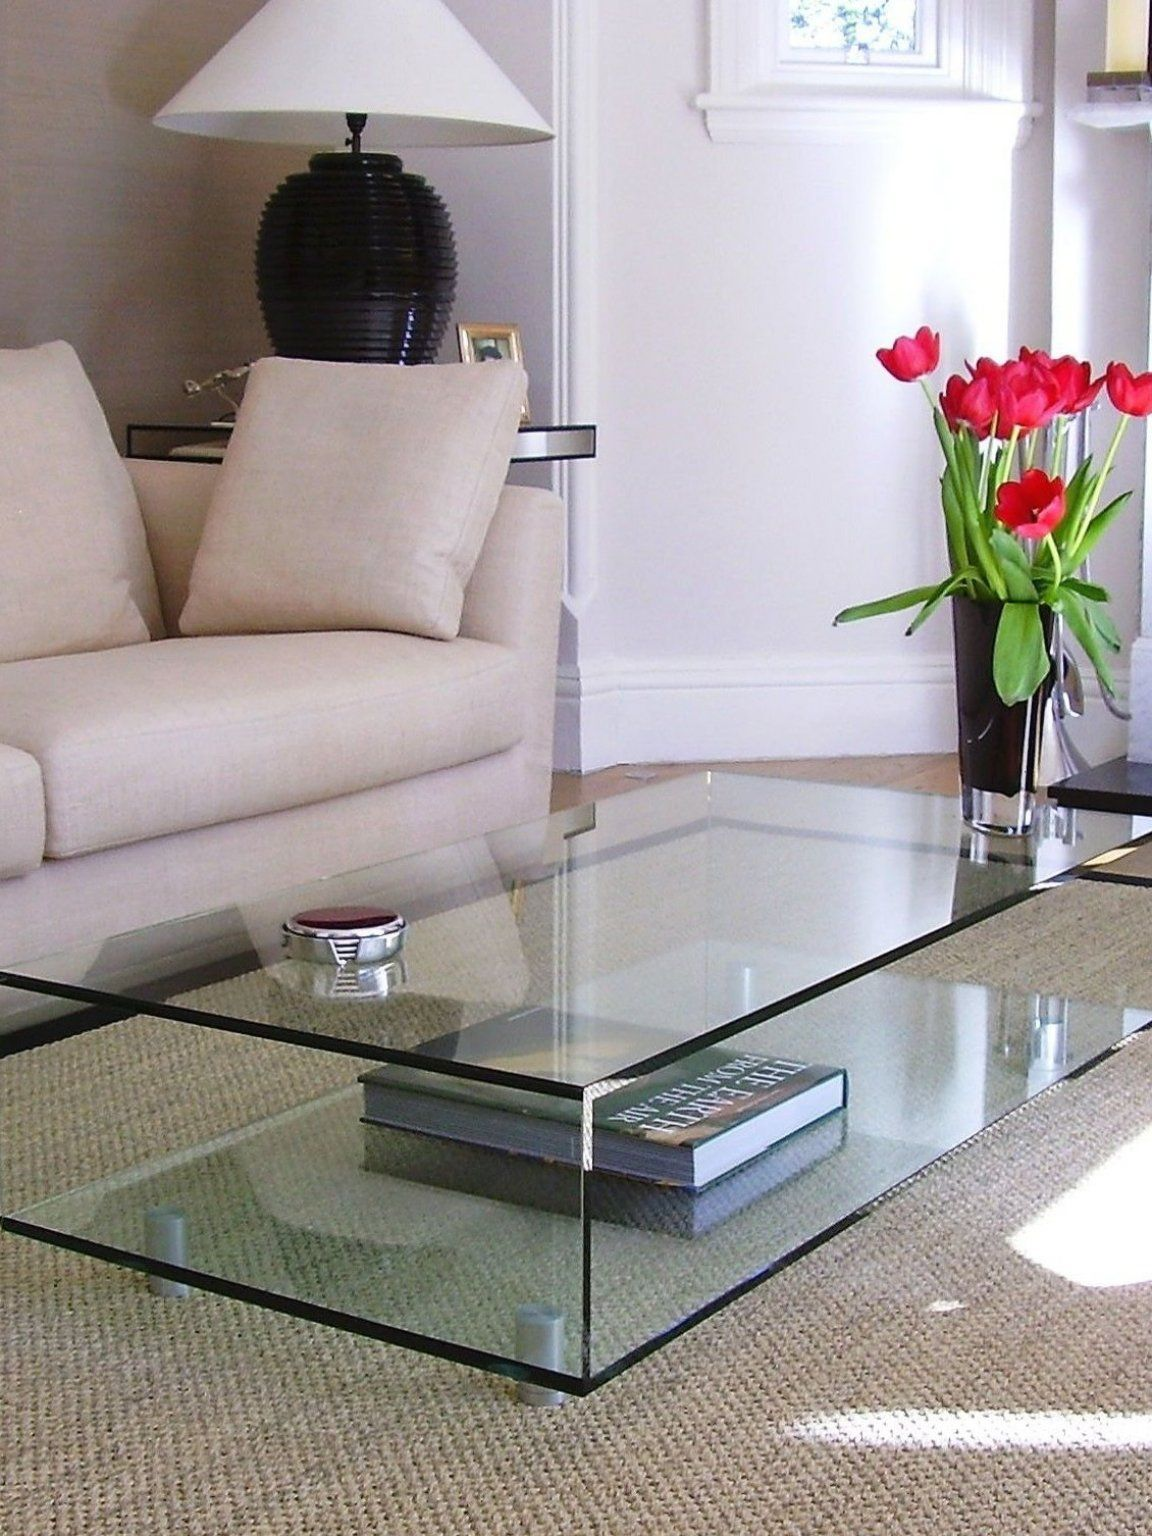 Classic Glass Coffee Table Glassdomain Table Tabledesign Engagement In 2020 Glass Table Living Room Coffee Table Decor Living Room Coffee Table Living Room Modern